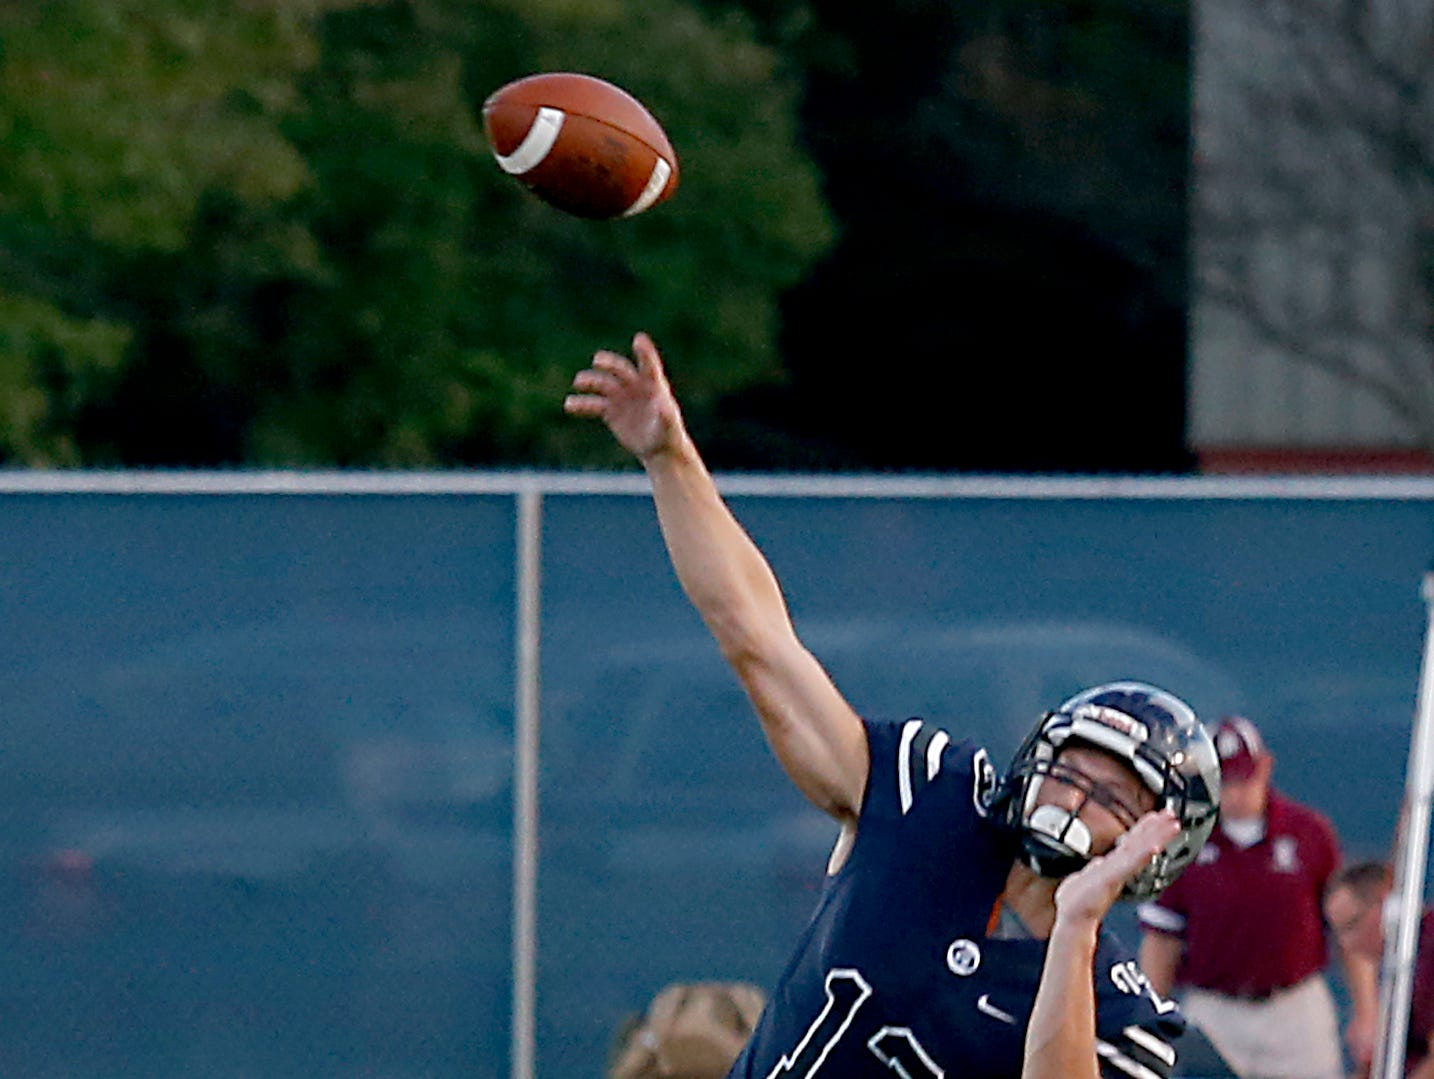 West Clermont quarterback Tristan Petty throws long against Turpin during their 2018 Skyline Chili Crosstown Showdown at West Clermont Friday, Sept. 14, 2018.